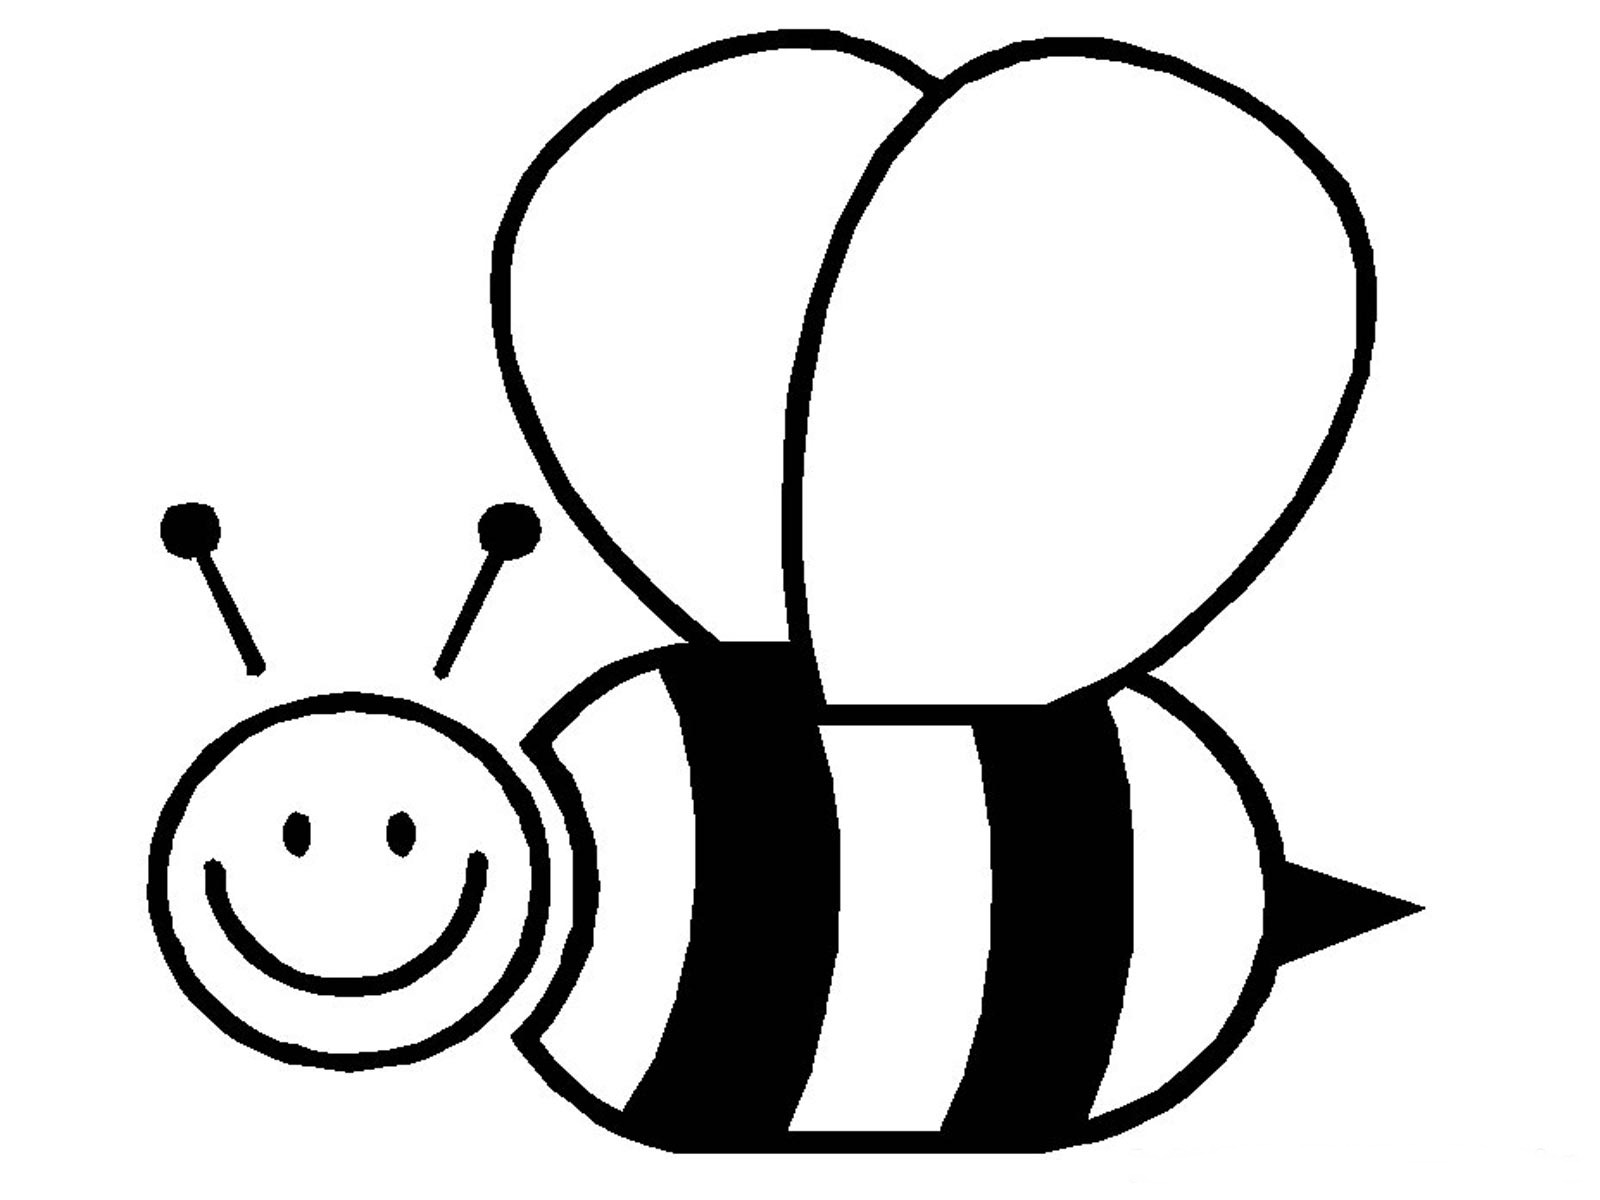 printable bumble bee coloring page free printable bumble bee coloring pages for kids printable bumble bee page coloring